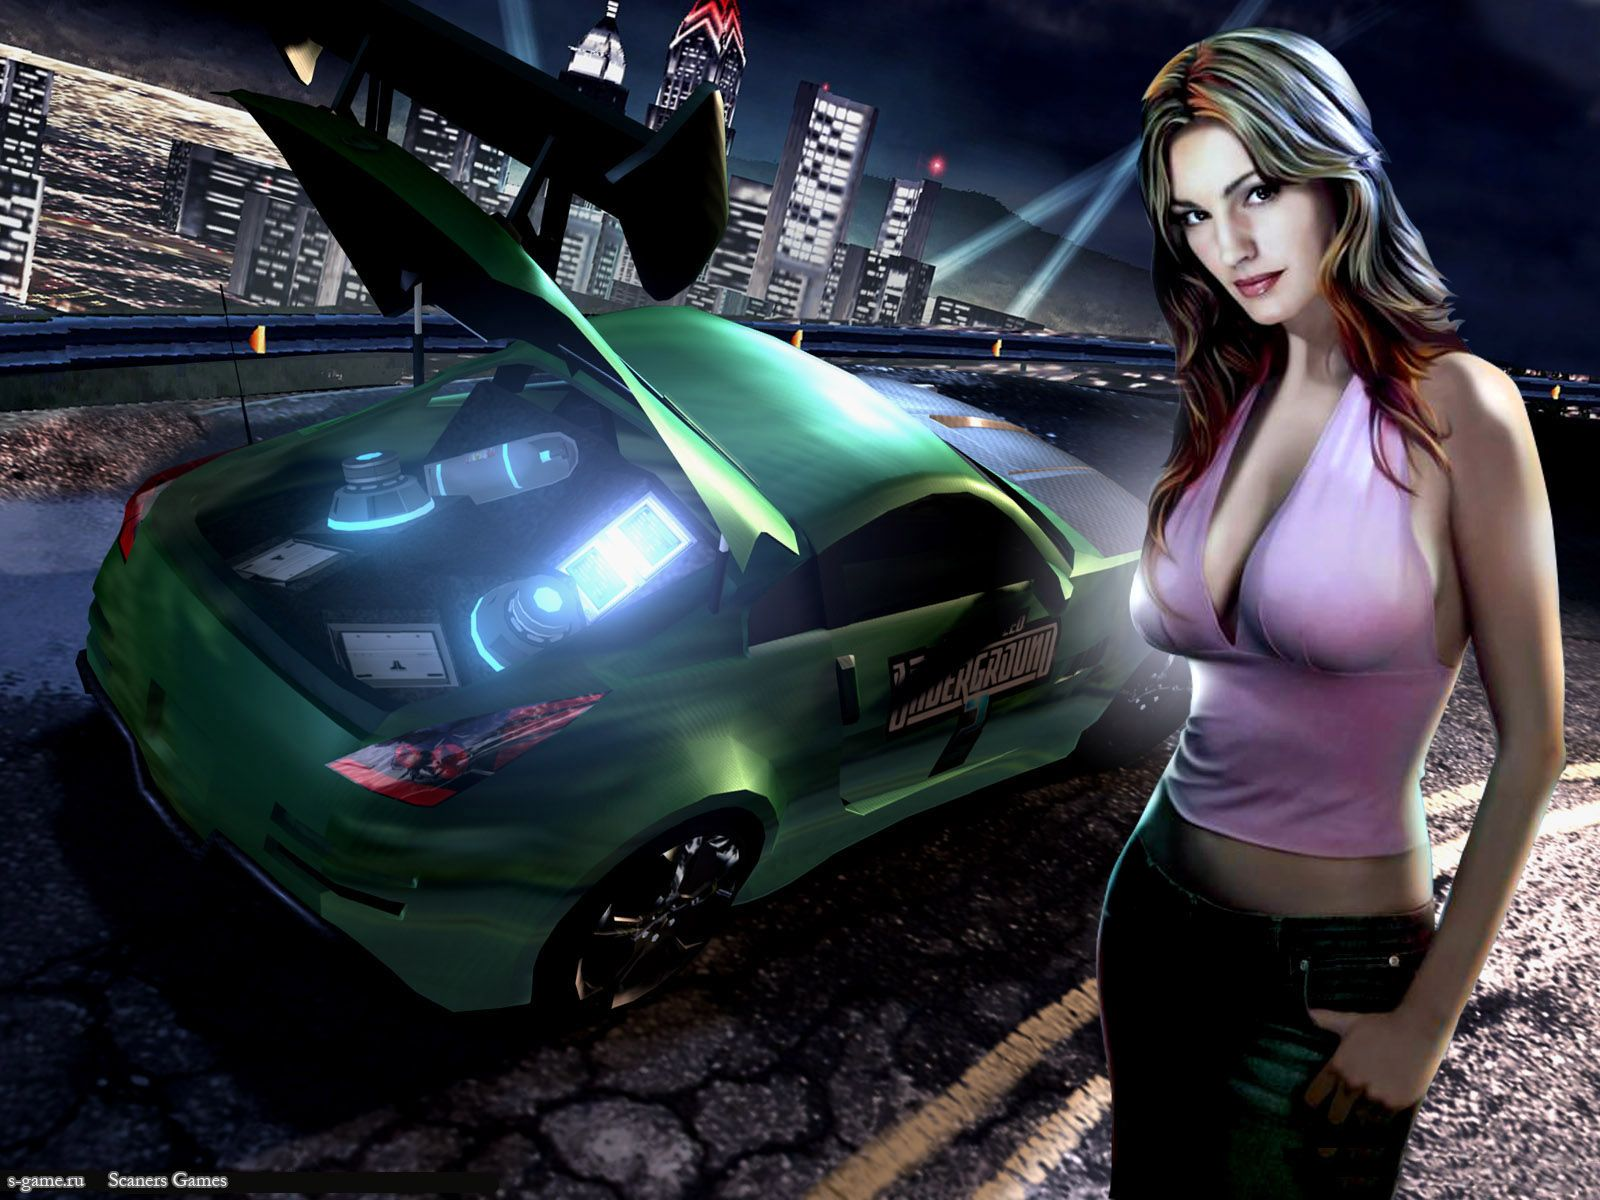 Need For Speed What A Beautiful Car Nfs Wolken Fast And Furious Vliegen